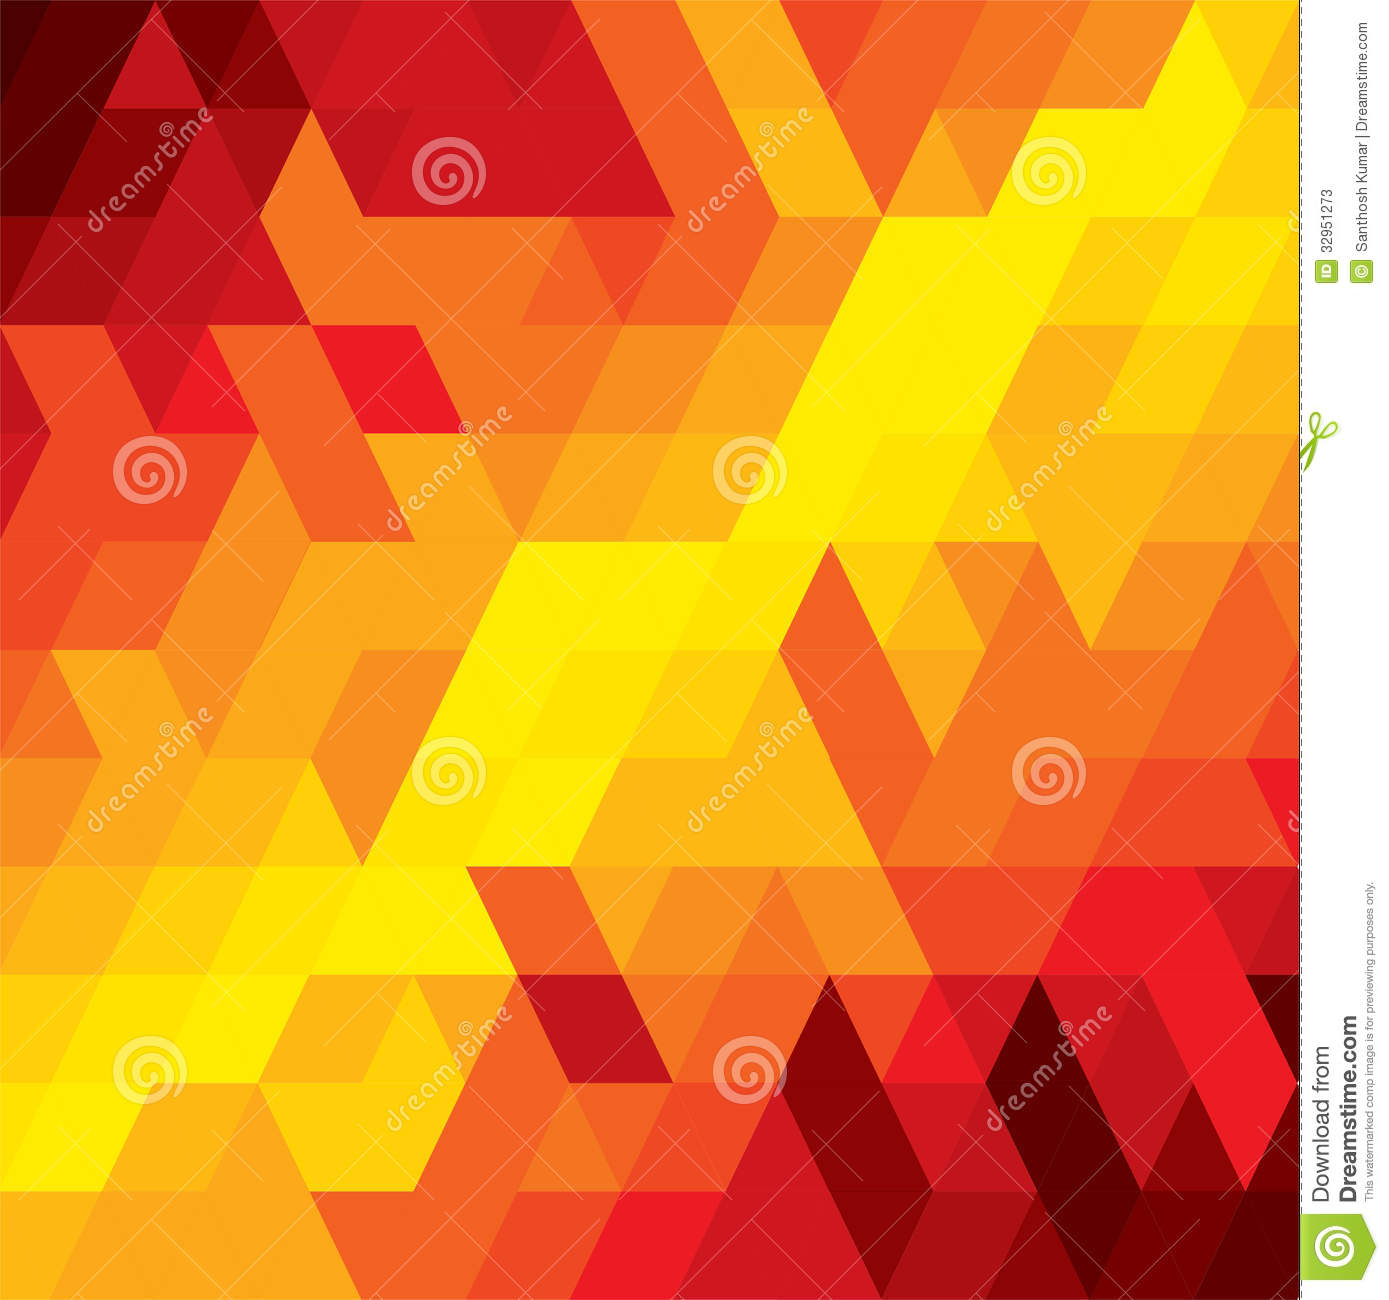 Abstract Colorful Background Of Diamond, Cube & Square